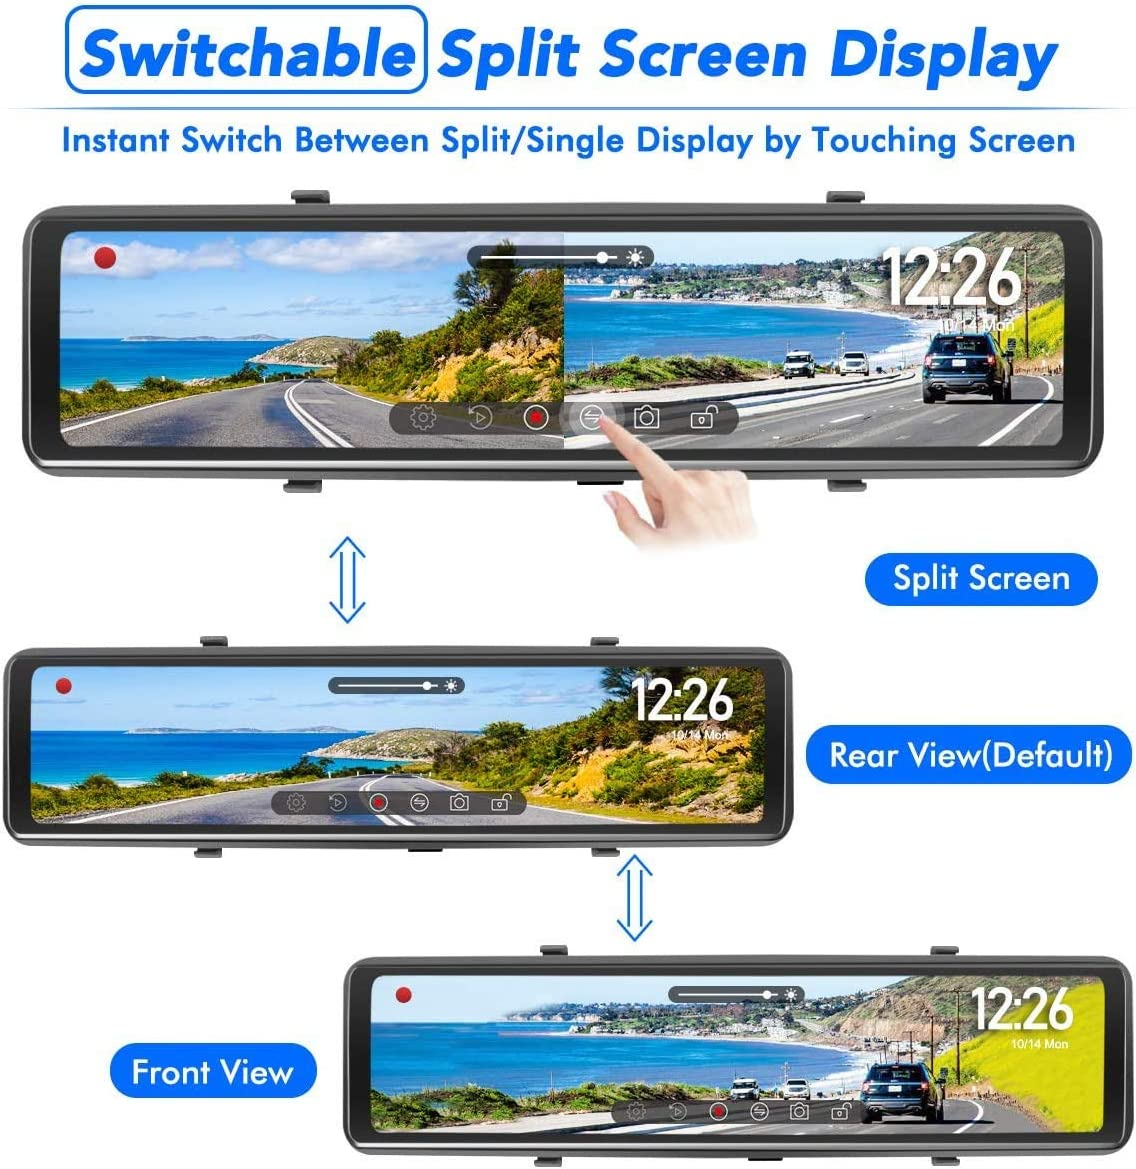 "8MP Sony Sensor for Super Night Vision with Parking Assistance Camecho 4K Mirror Dash Cam for Cars Voice Control 12/"" Full Touch Screen Rear View Mirror Camera 2.5K Rearview Camera"